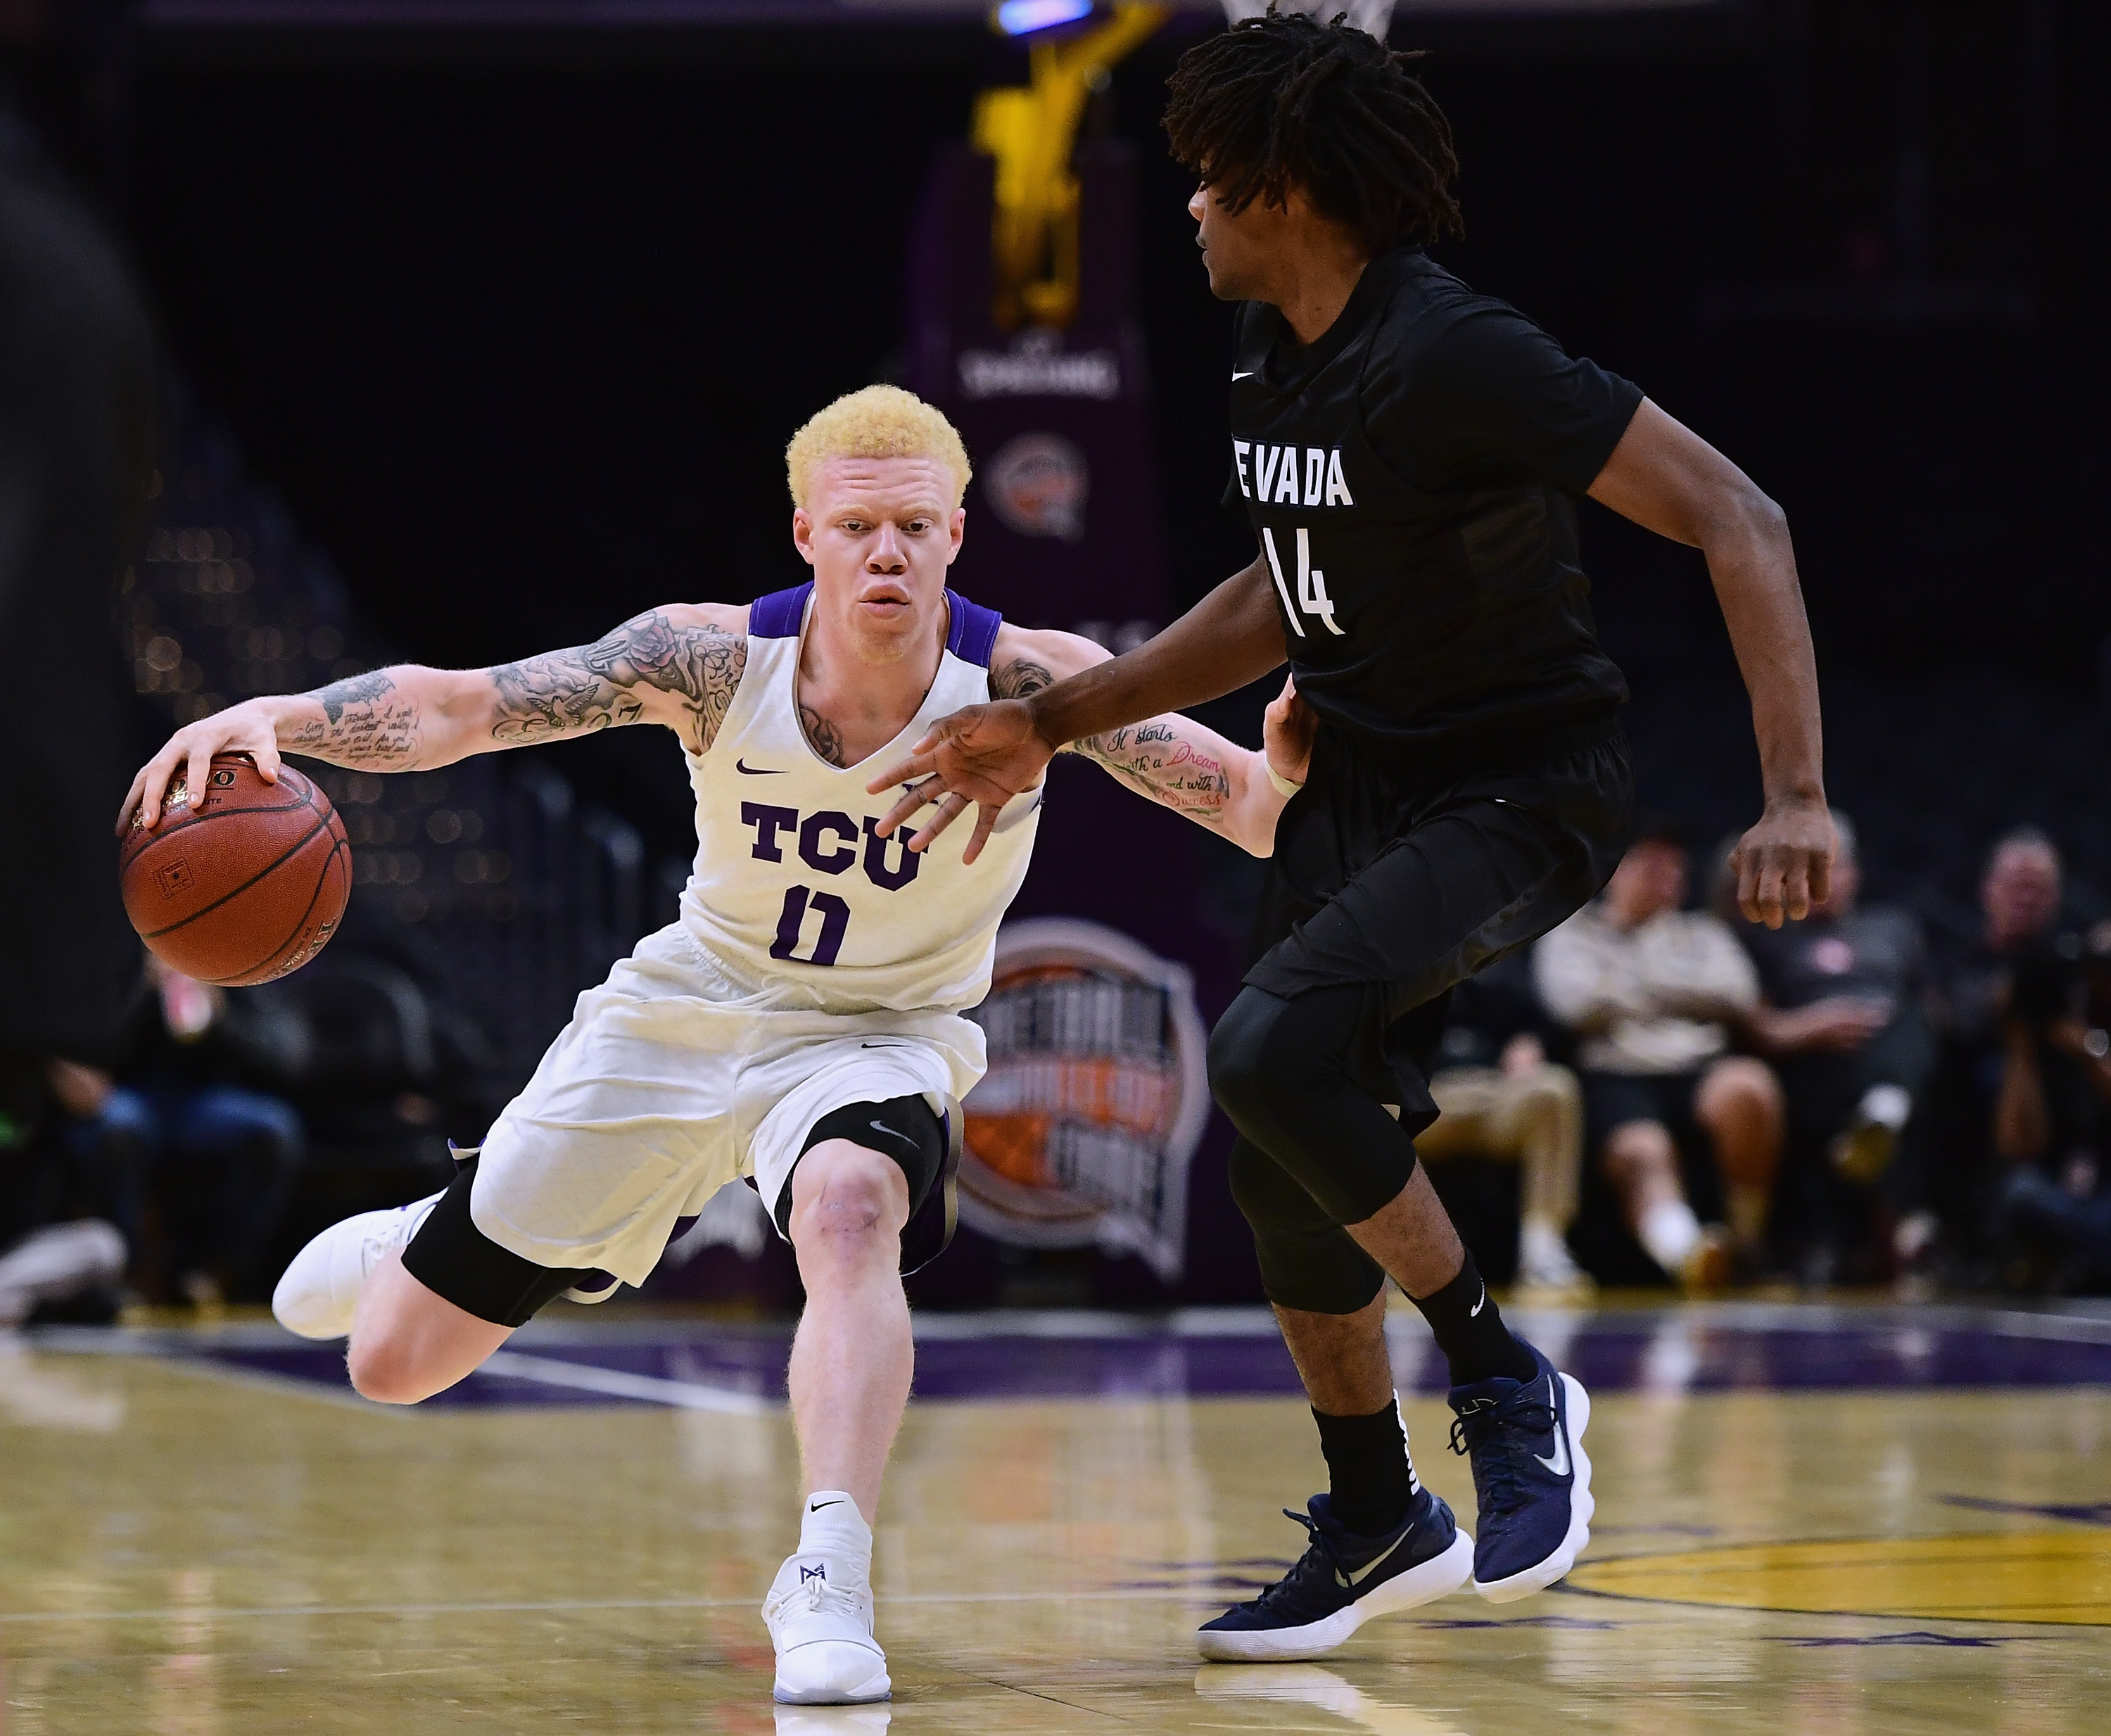 Week 9 College Basketball Rankings Entering Conference Play